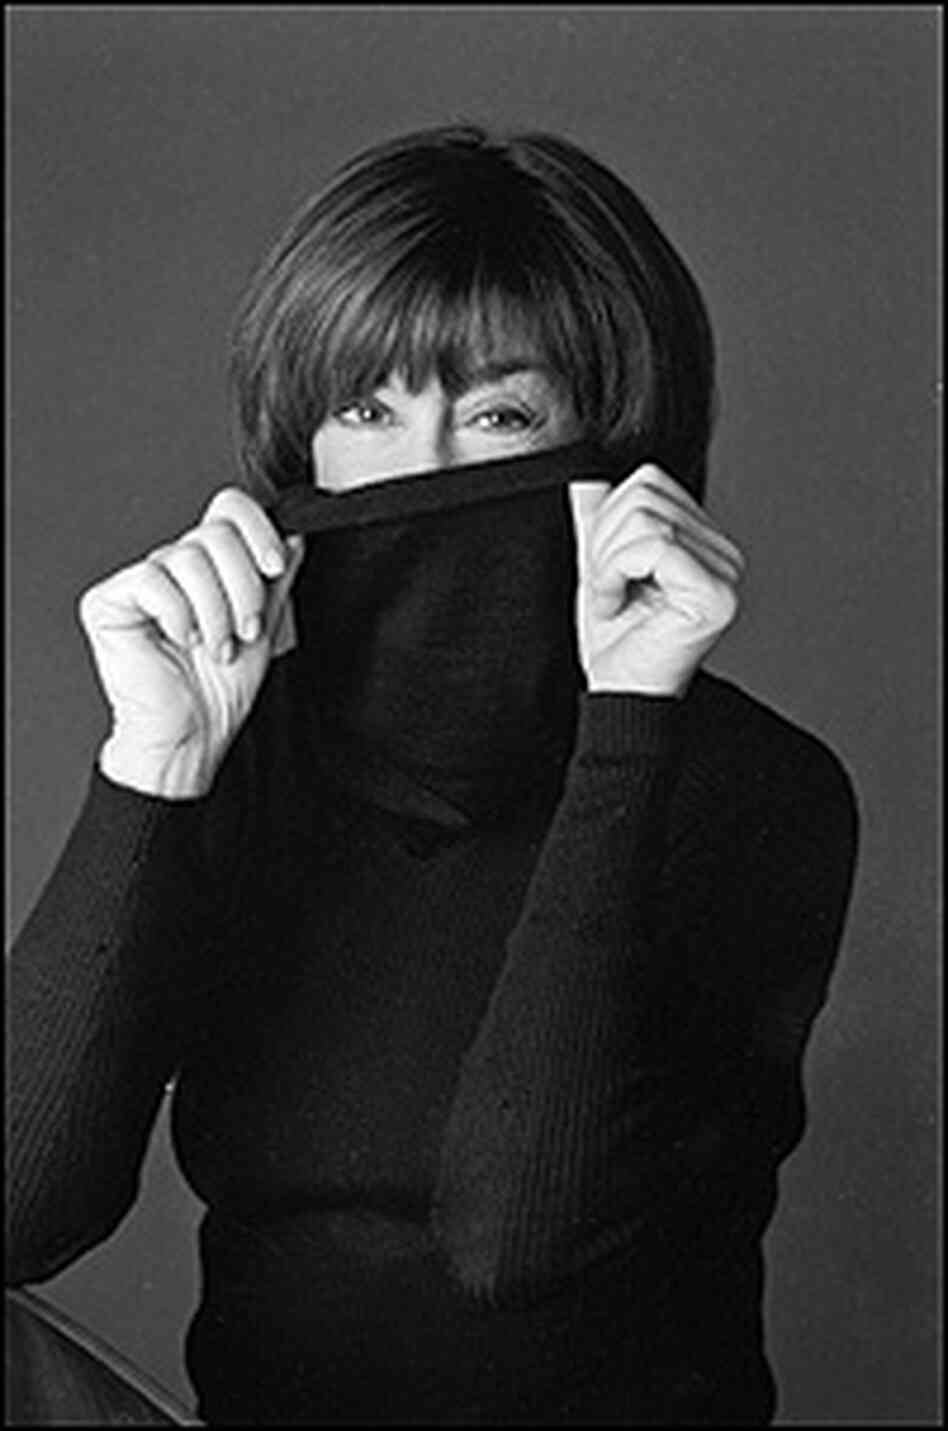 Photo of Nora Ephron hiding her neck inside a black turtleneck sweater.